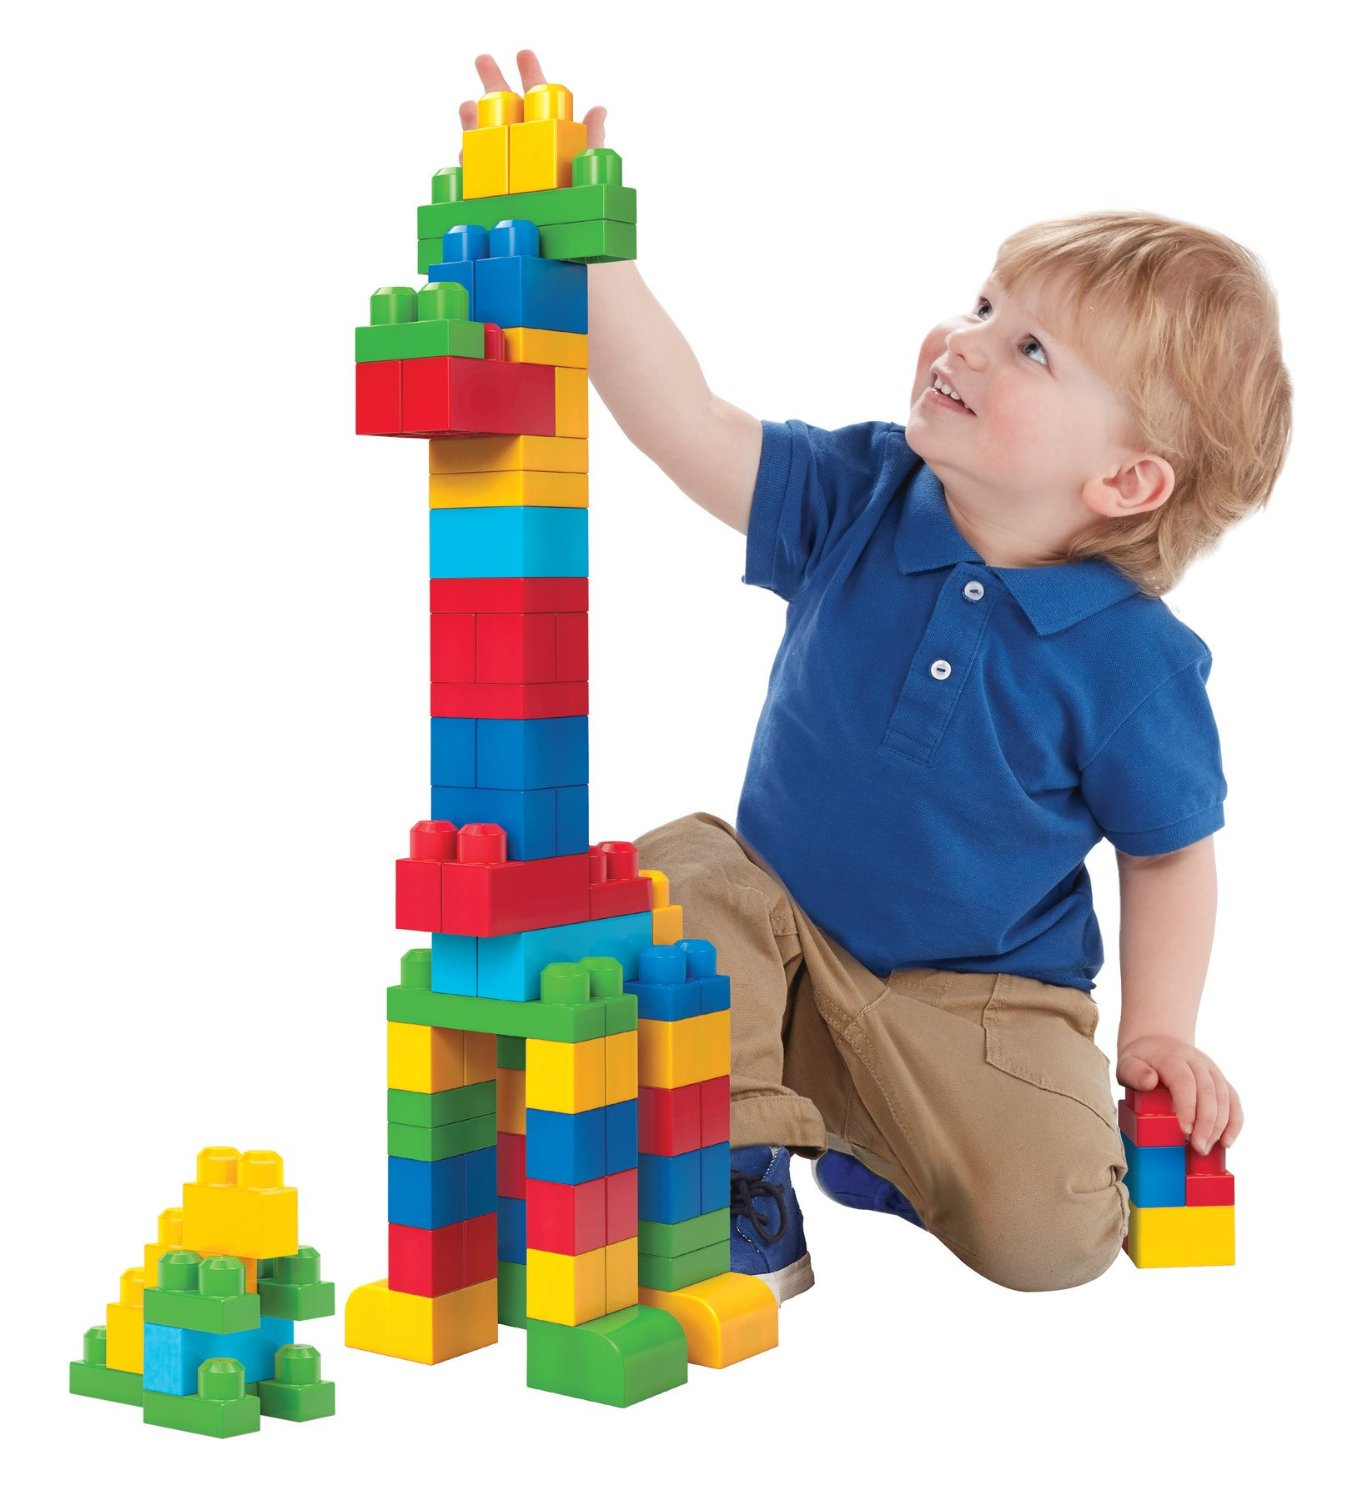 5 Benefits of Building Blocks for Kids - Kids Toys Home